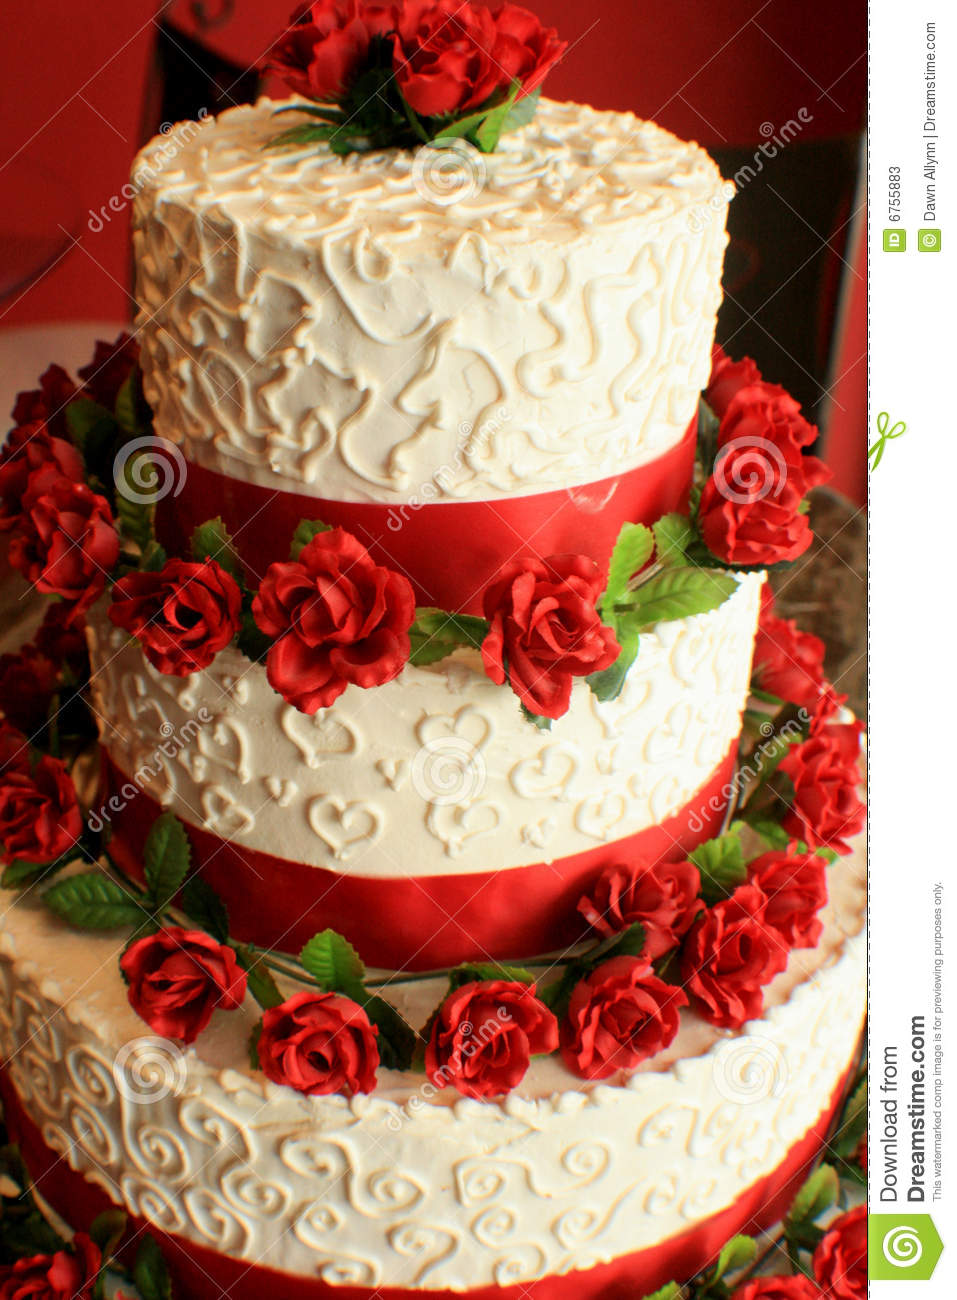 Wedding Cake W Red Stock Image Image Of Baker Delicate